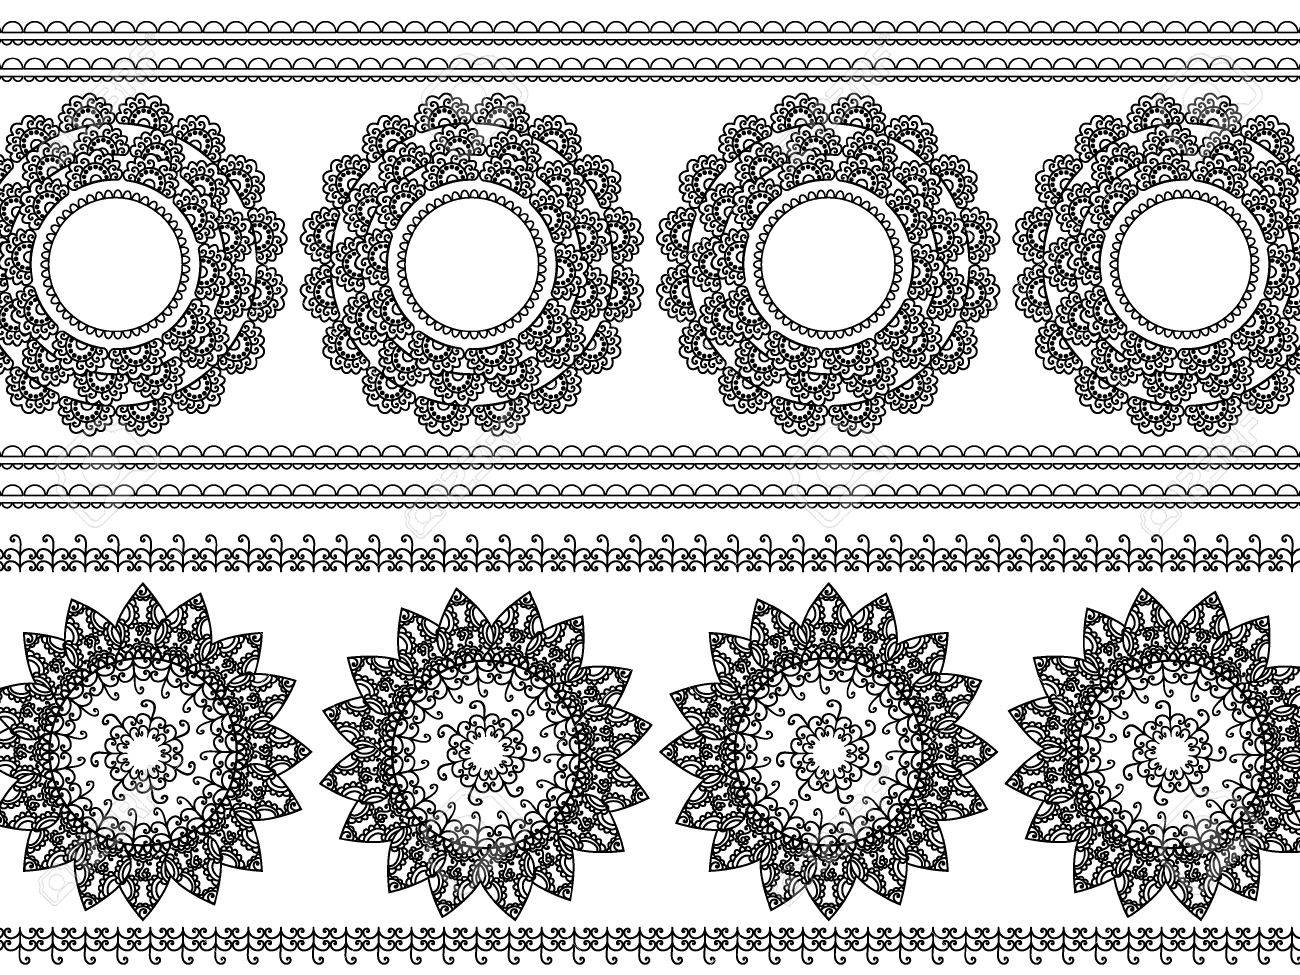 Detail Henna Inspired Border designs Stock Vector - 9180046